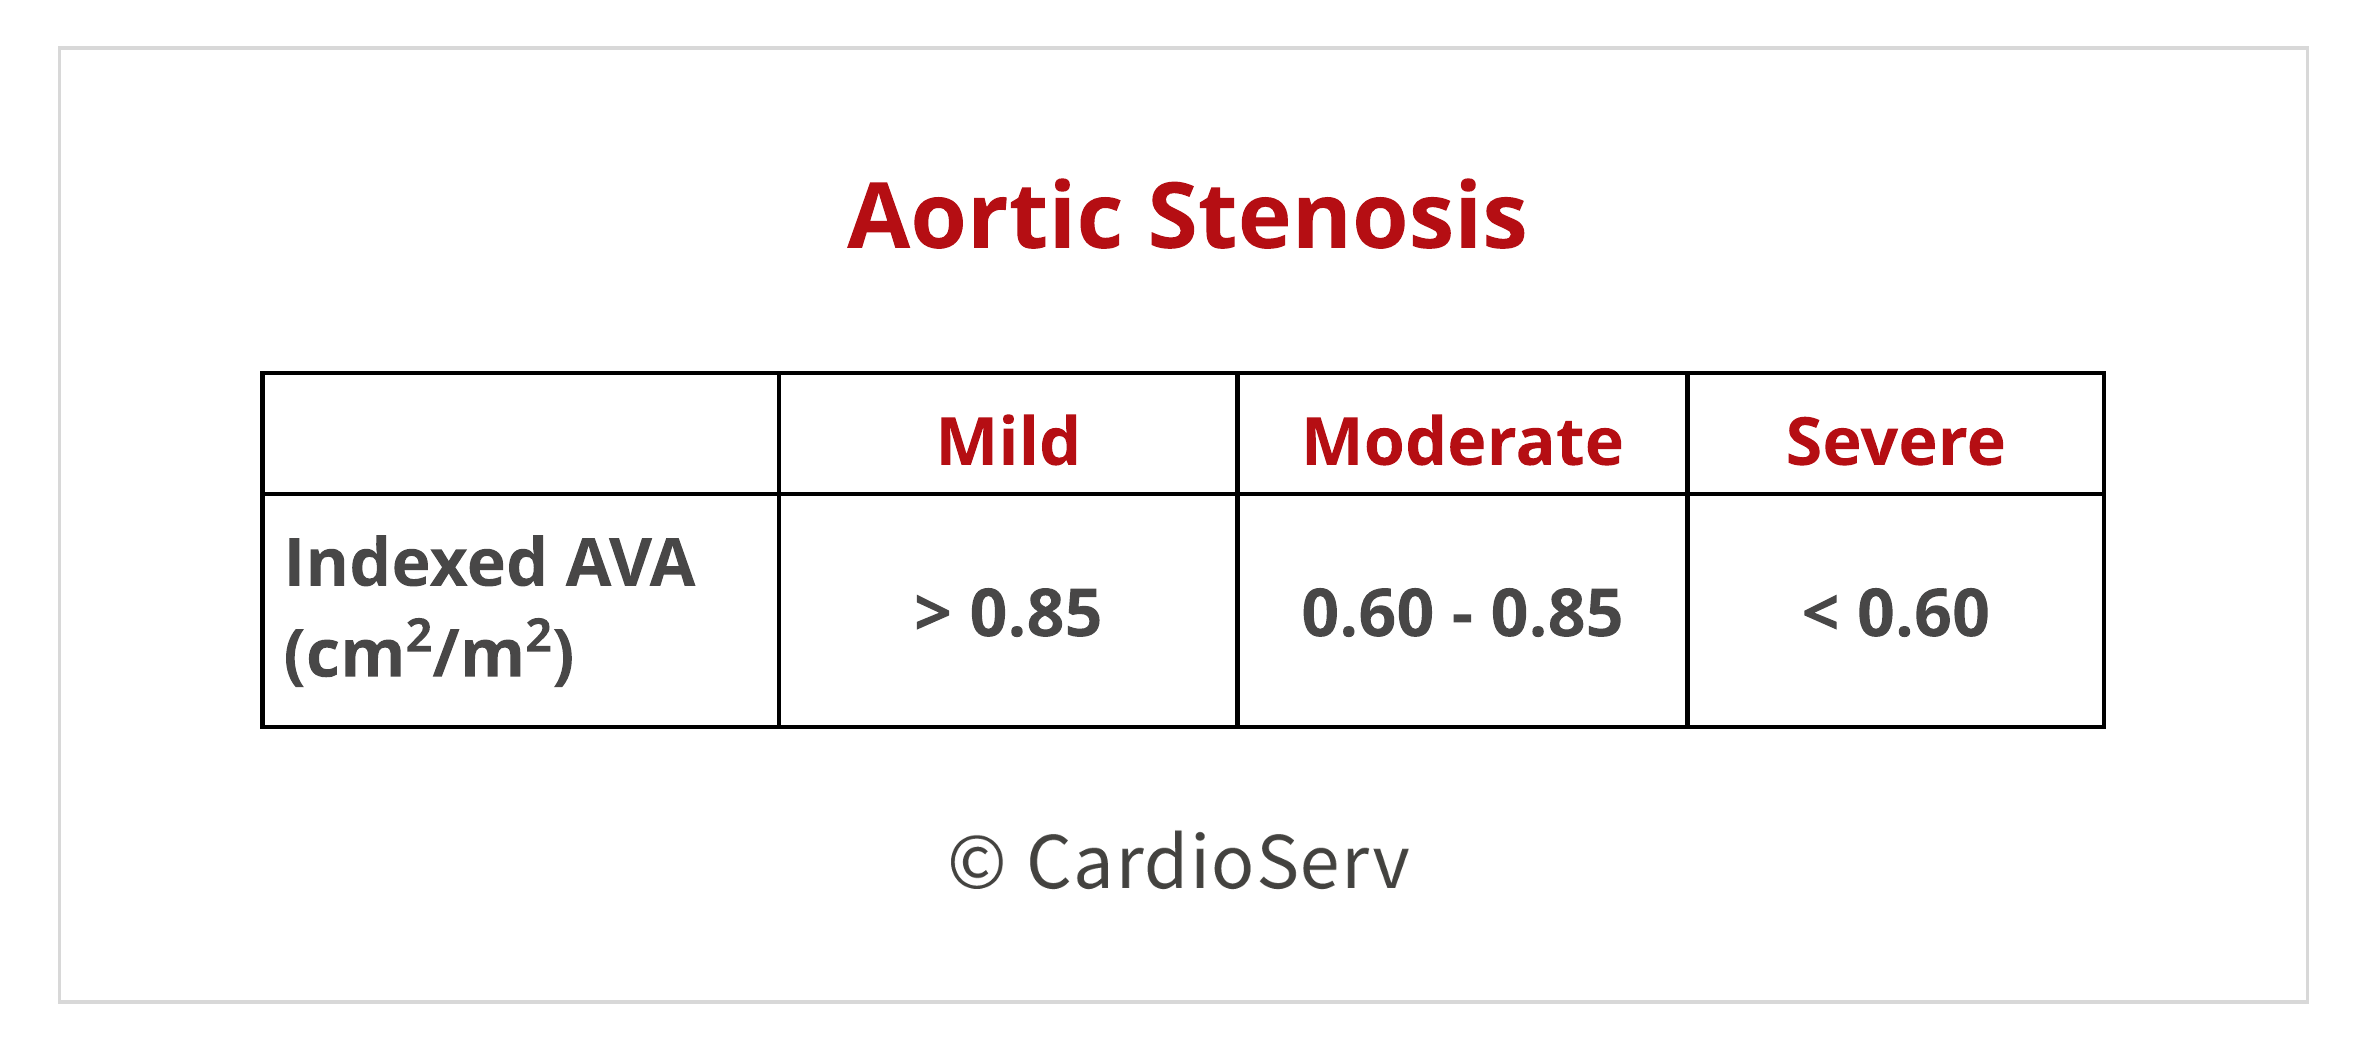 indexed AVA echo aortic stenosis